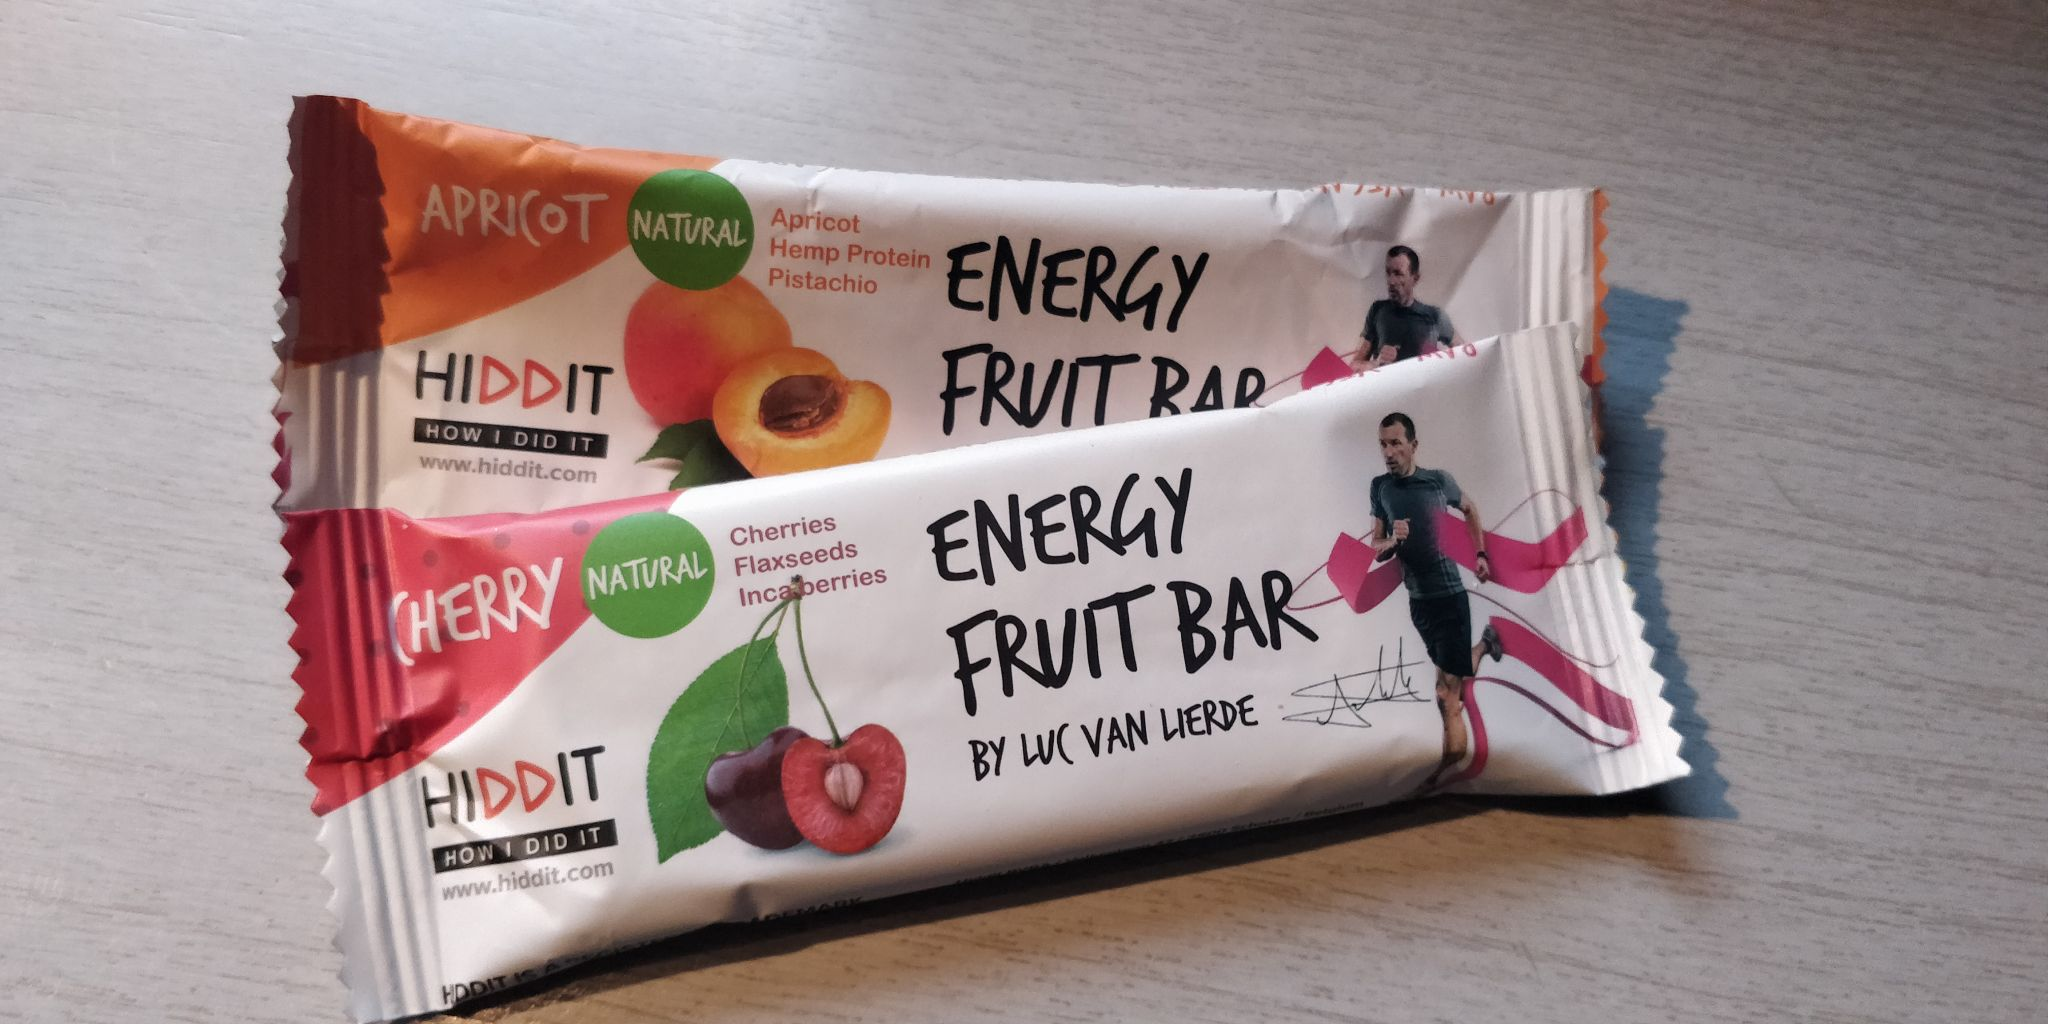 Hiddit Fruit Bars